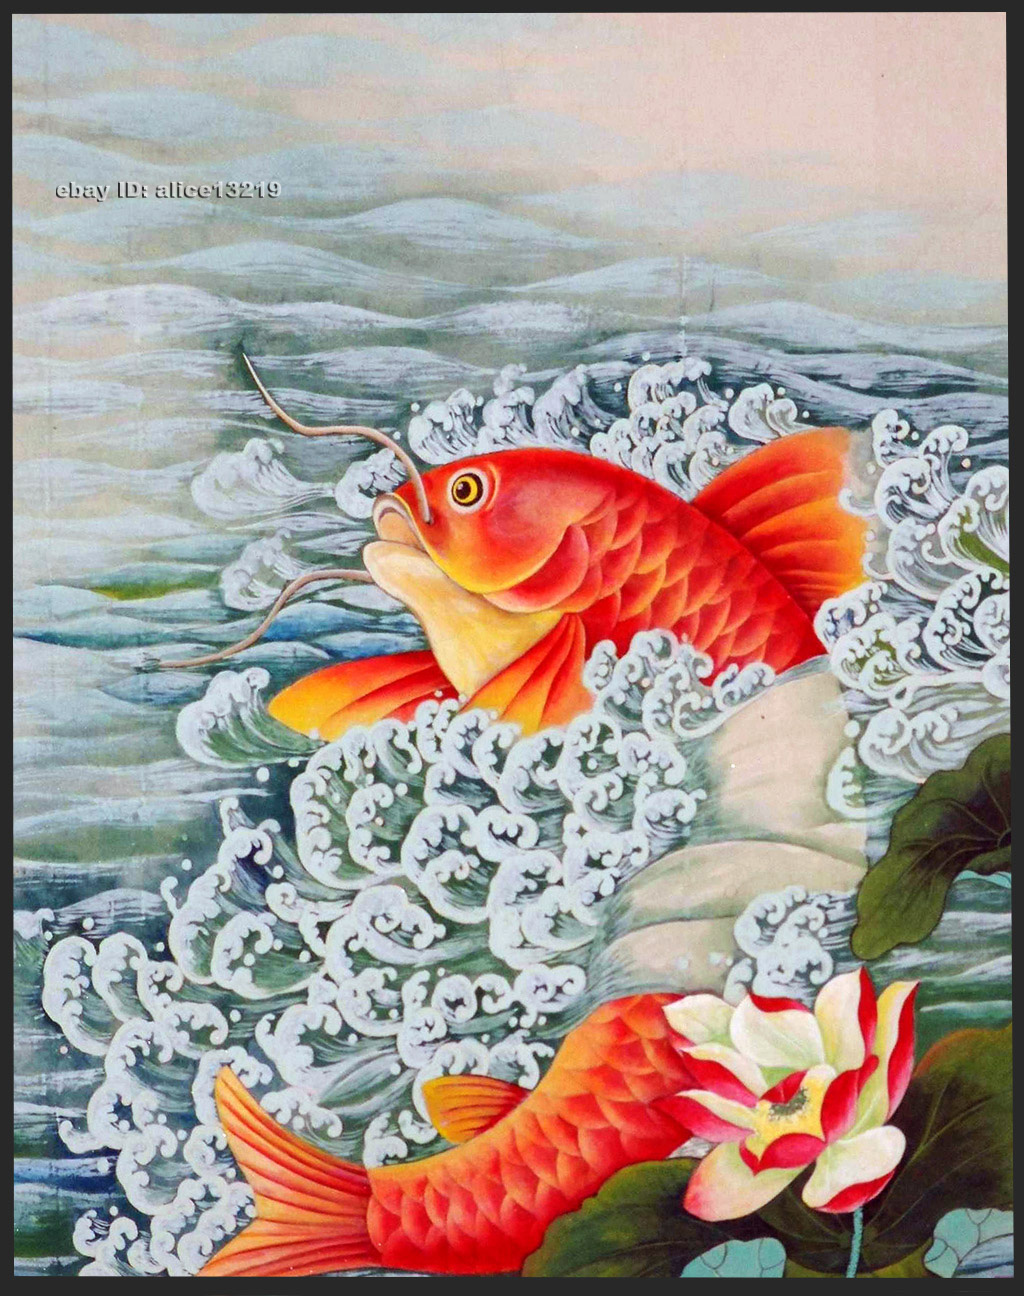 Details about chinese natural mulberry silk threadsu hand embroidery kitslotus fish red carp